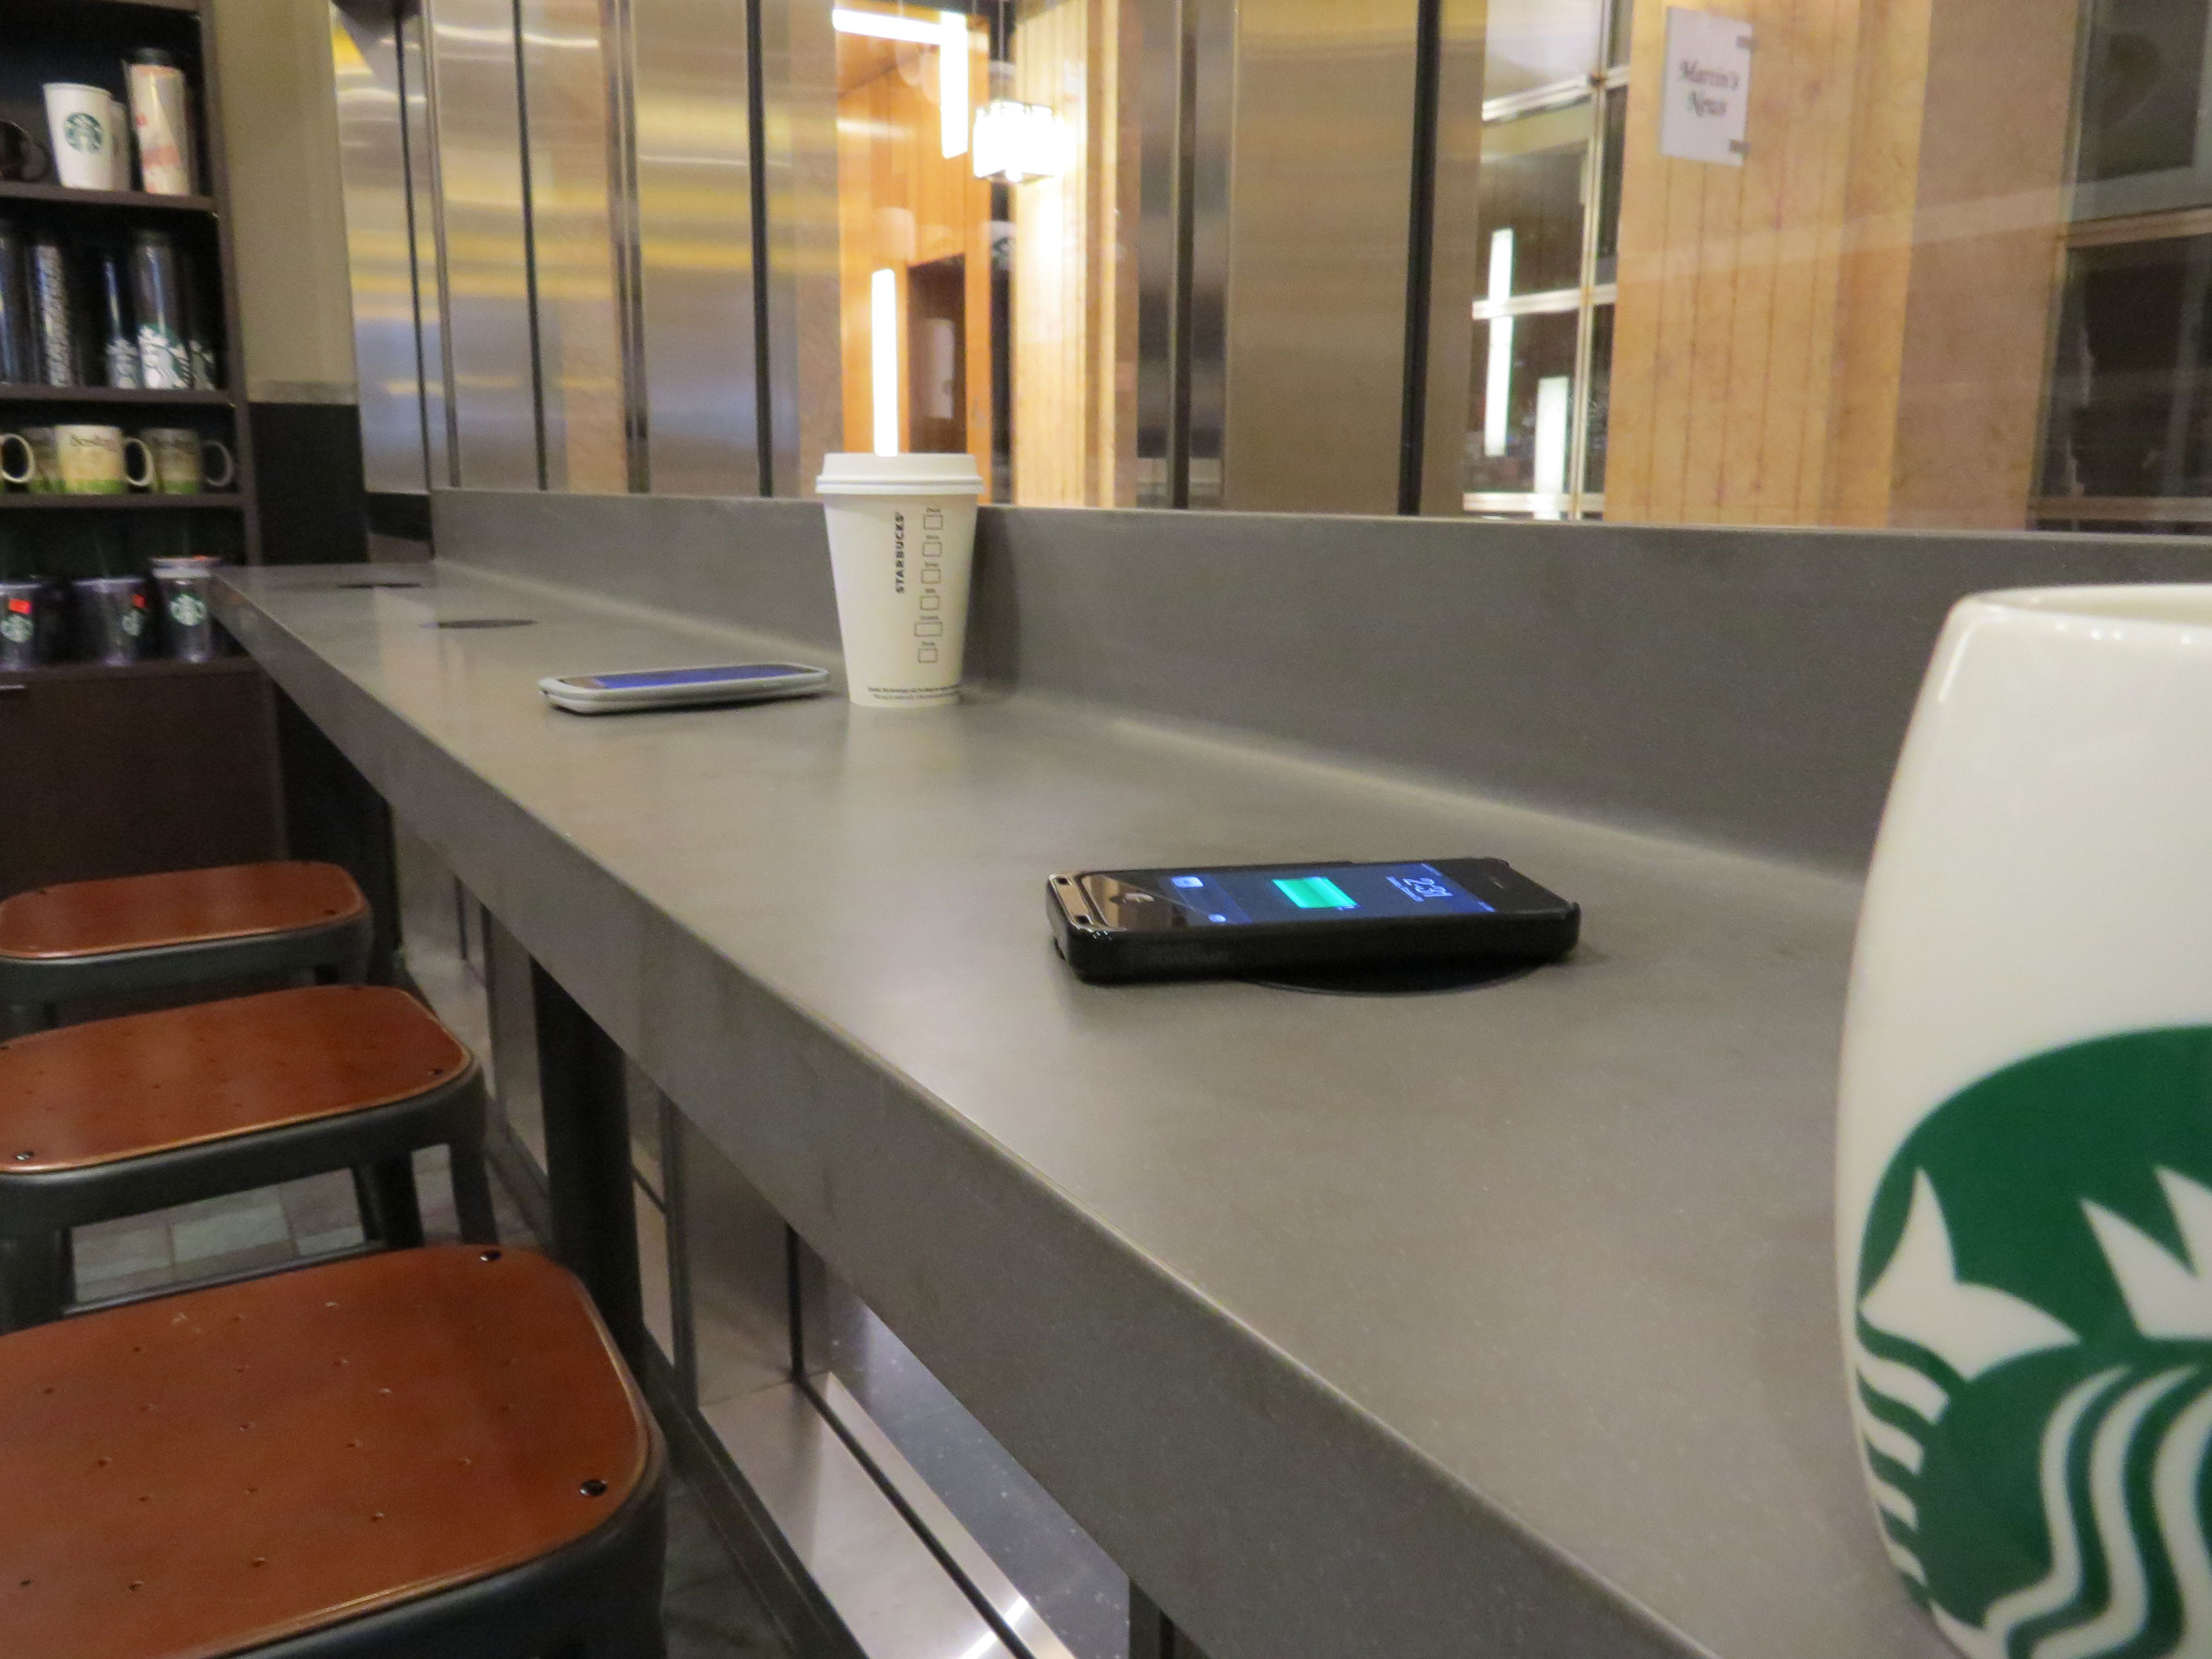 Powermat spots on Starbucks counters